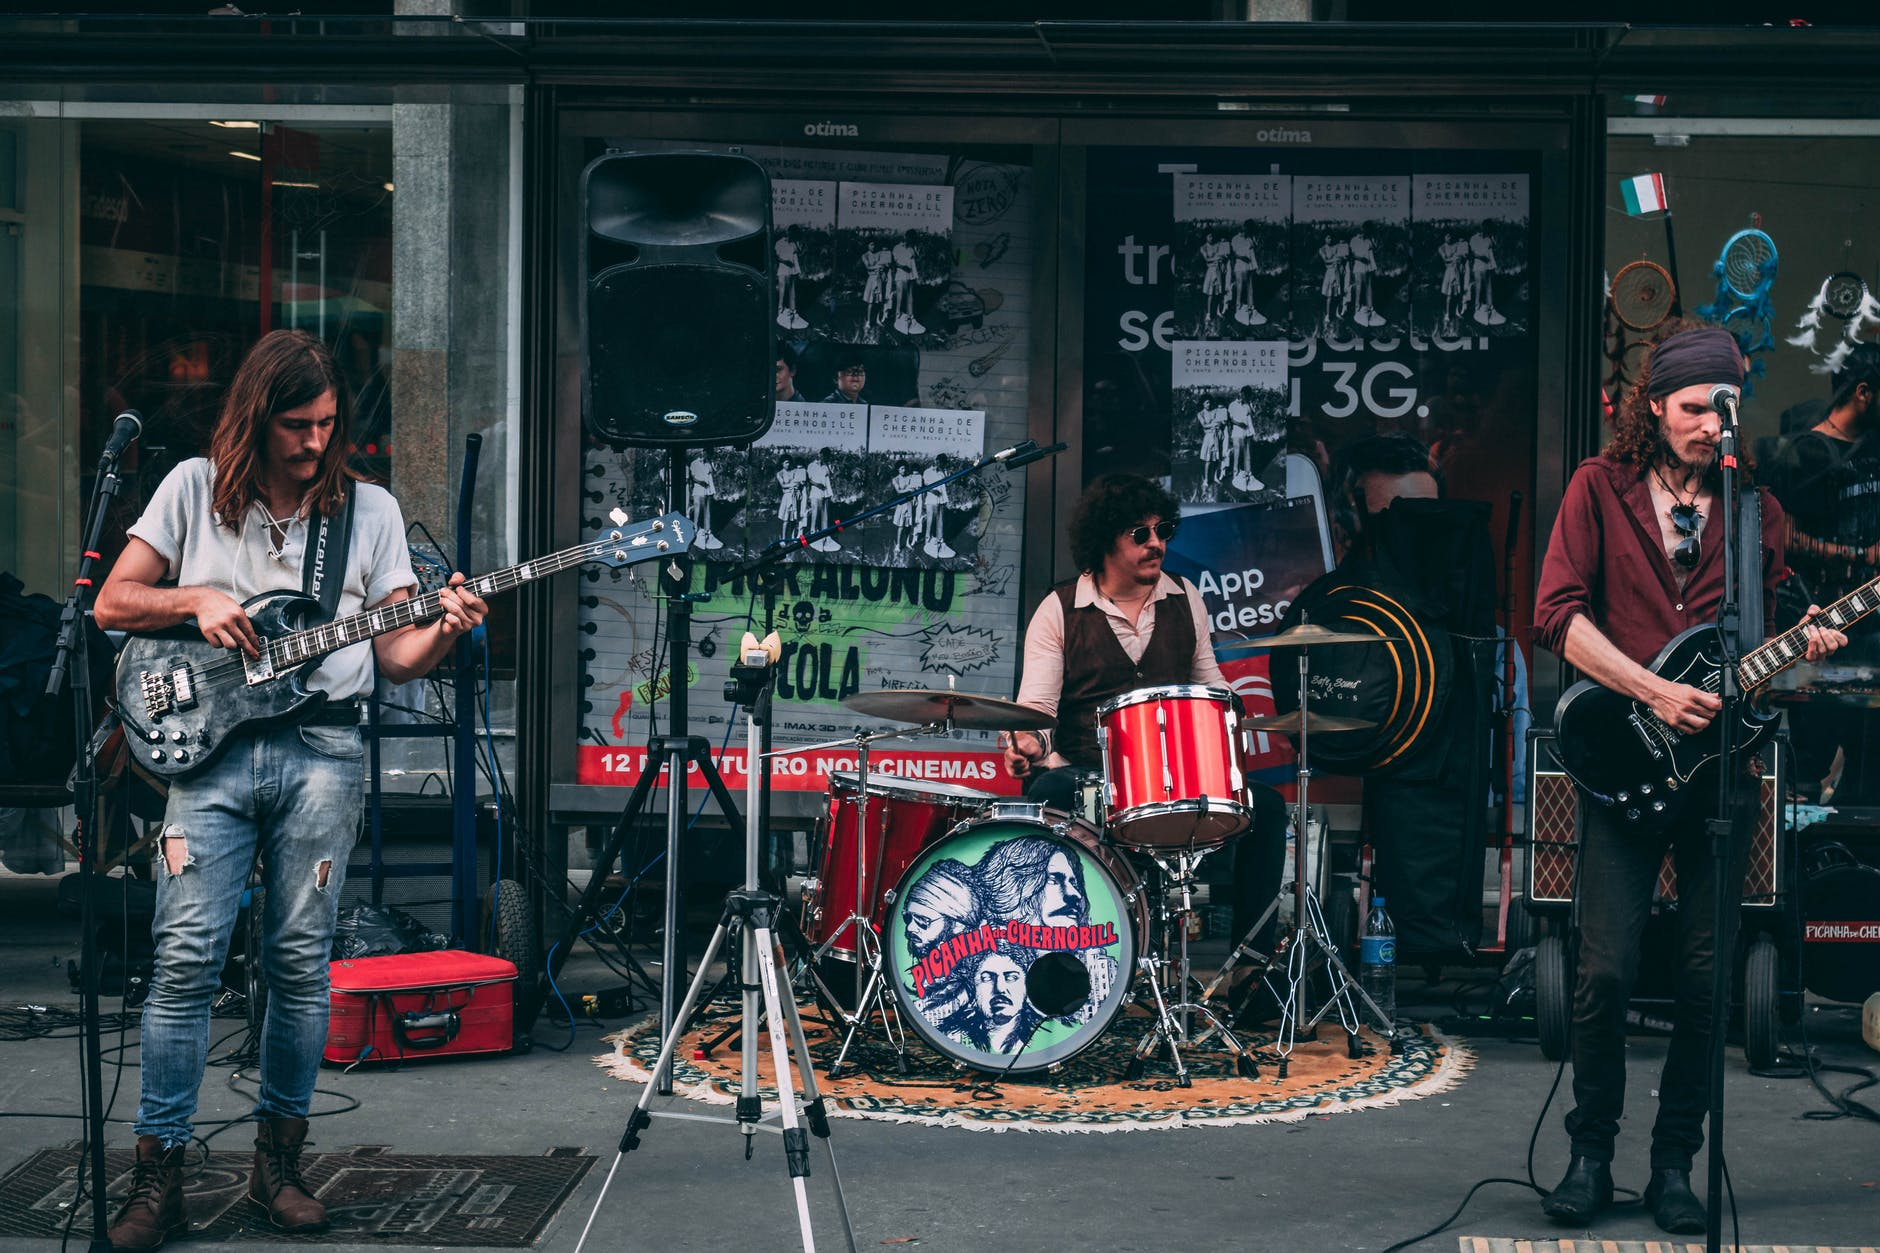 music band performing in front of building